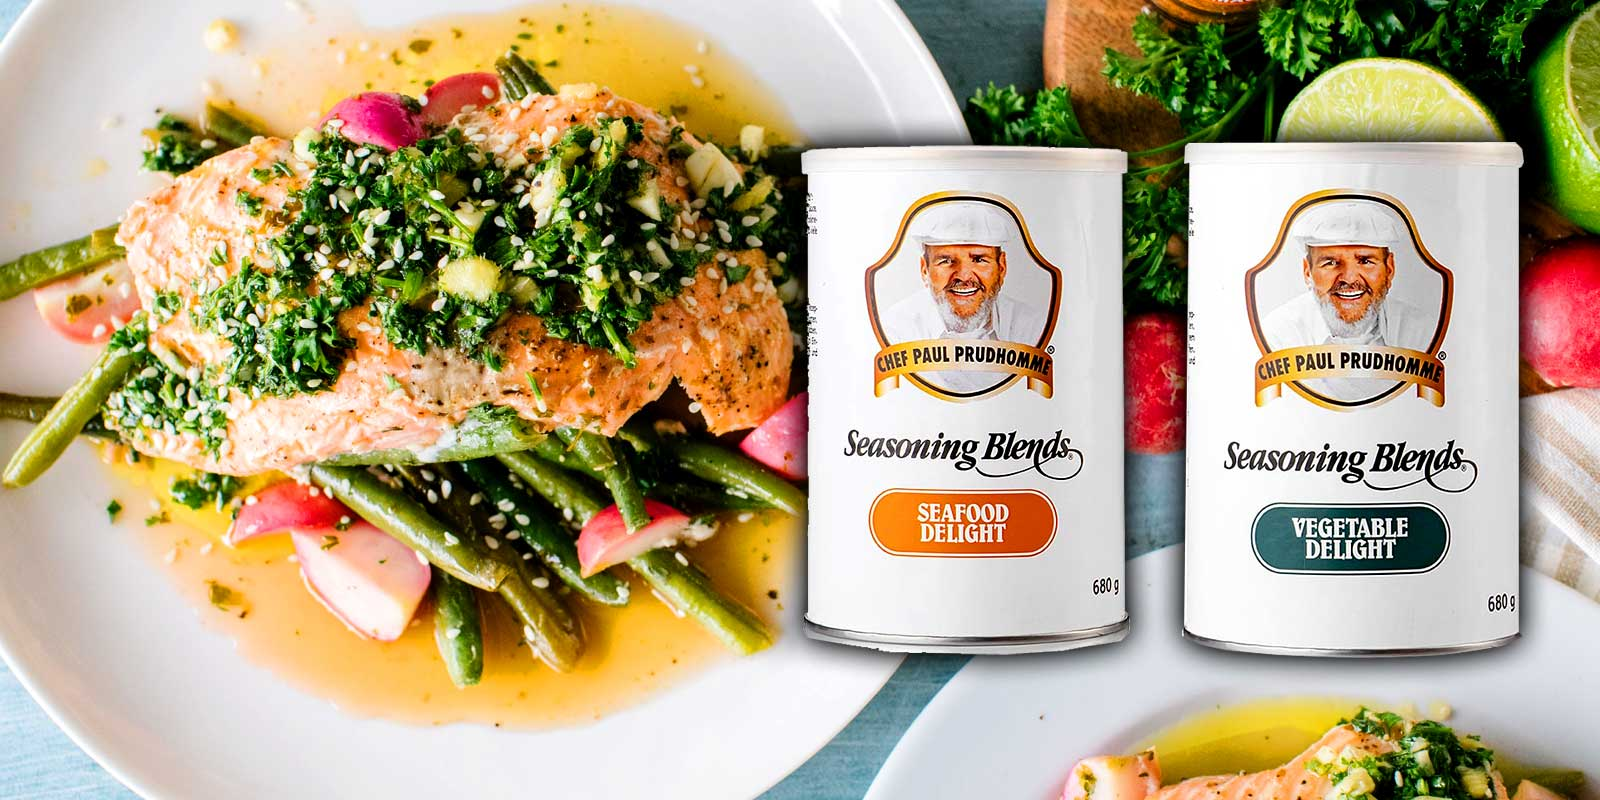 Paul Prudhomme spices Chef Paul Prudhommes seasoning blends: barbecue, steak, pizza and pasta, meat, poultry, veal and pork and other spices.   All spices are without preservatives and without glutamate.